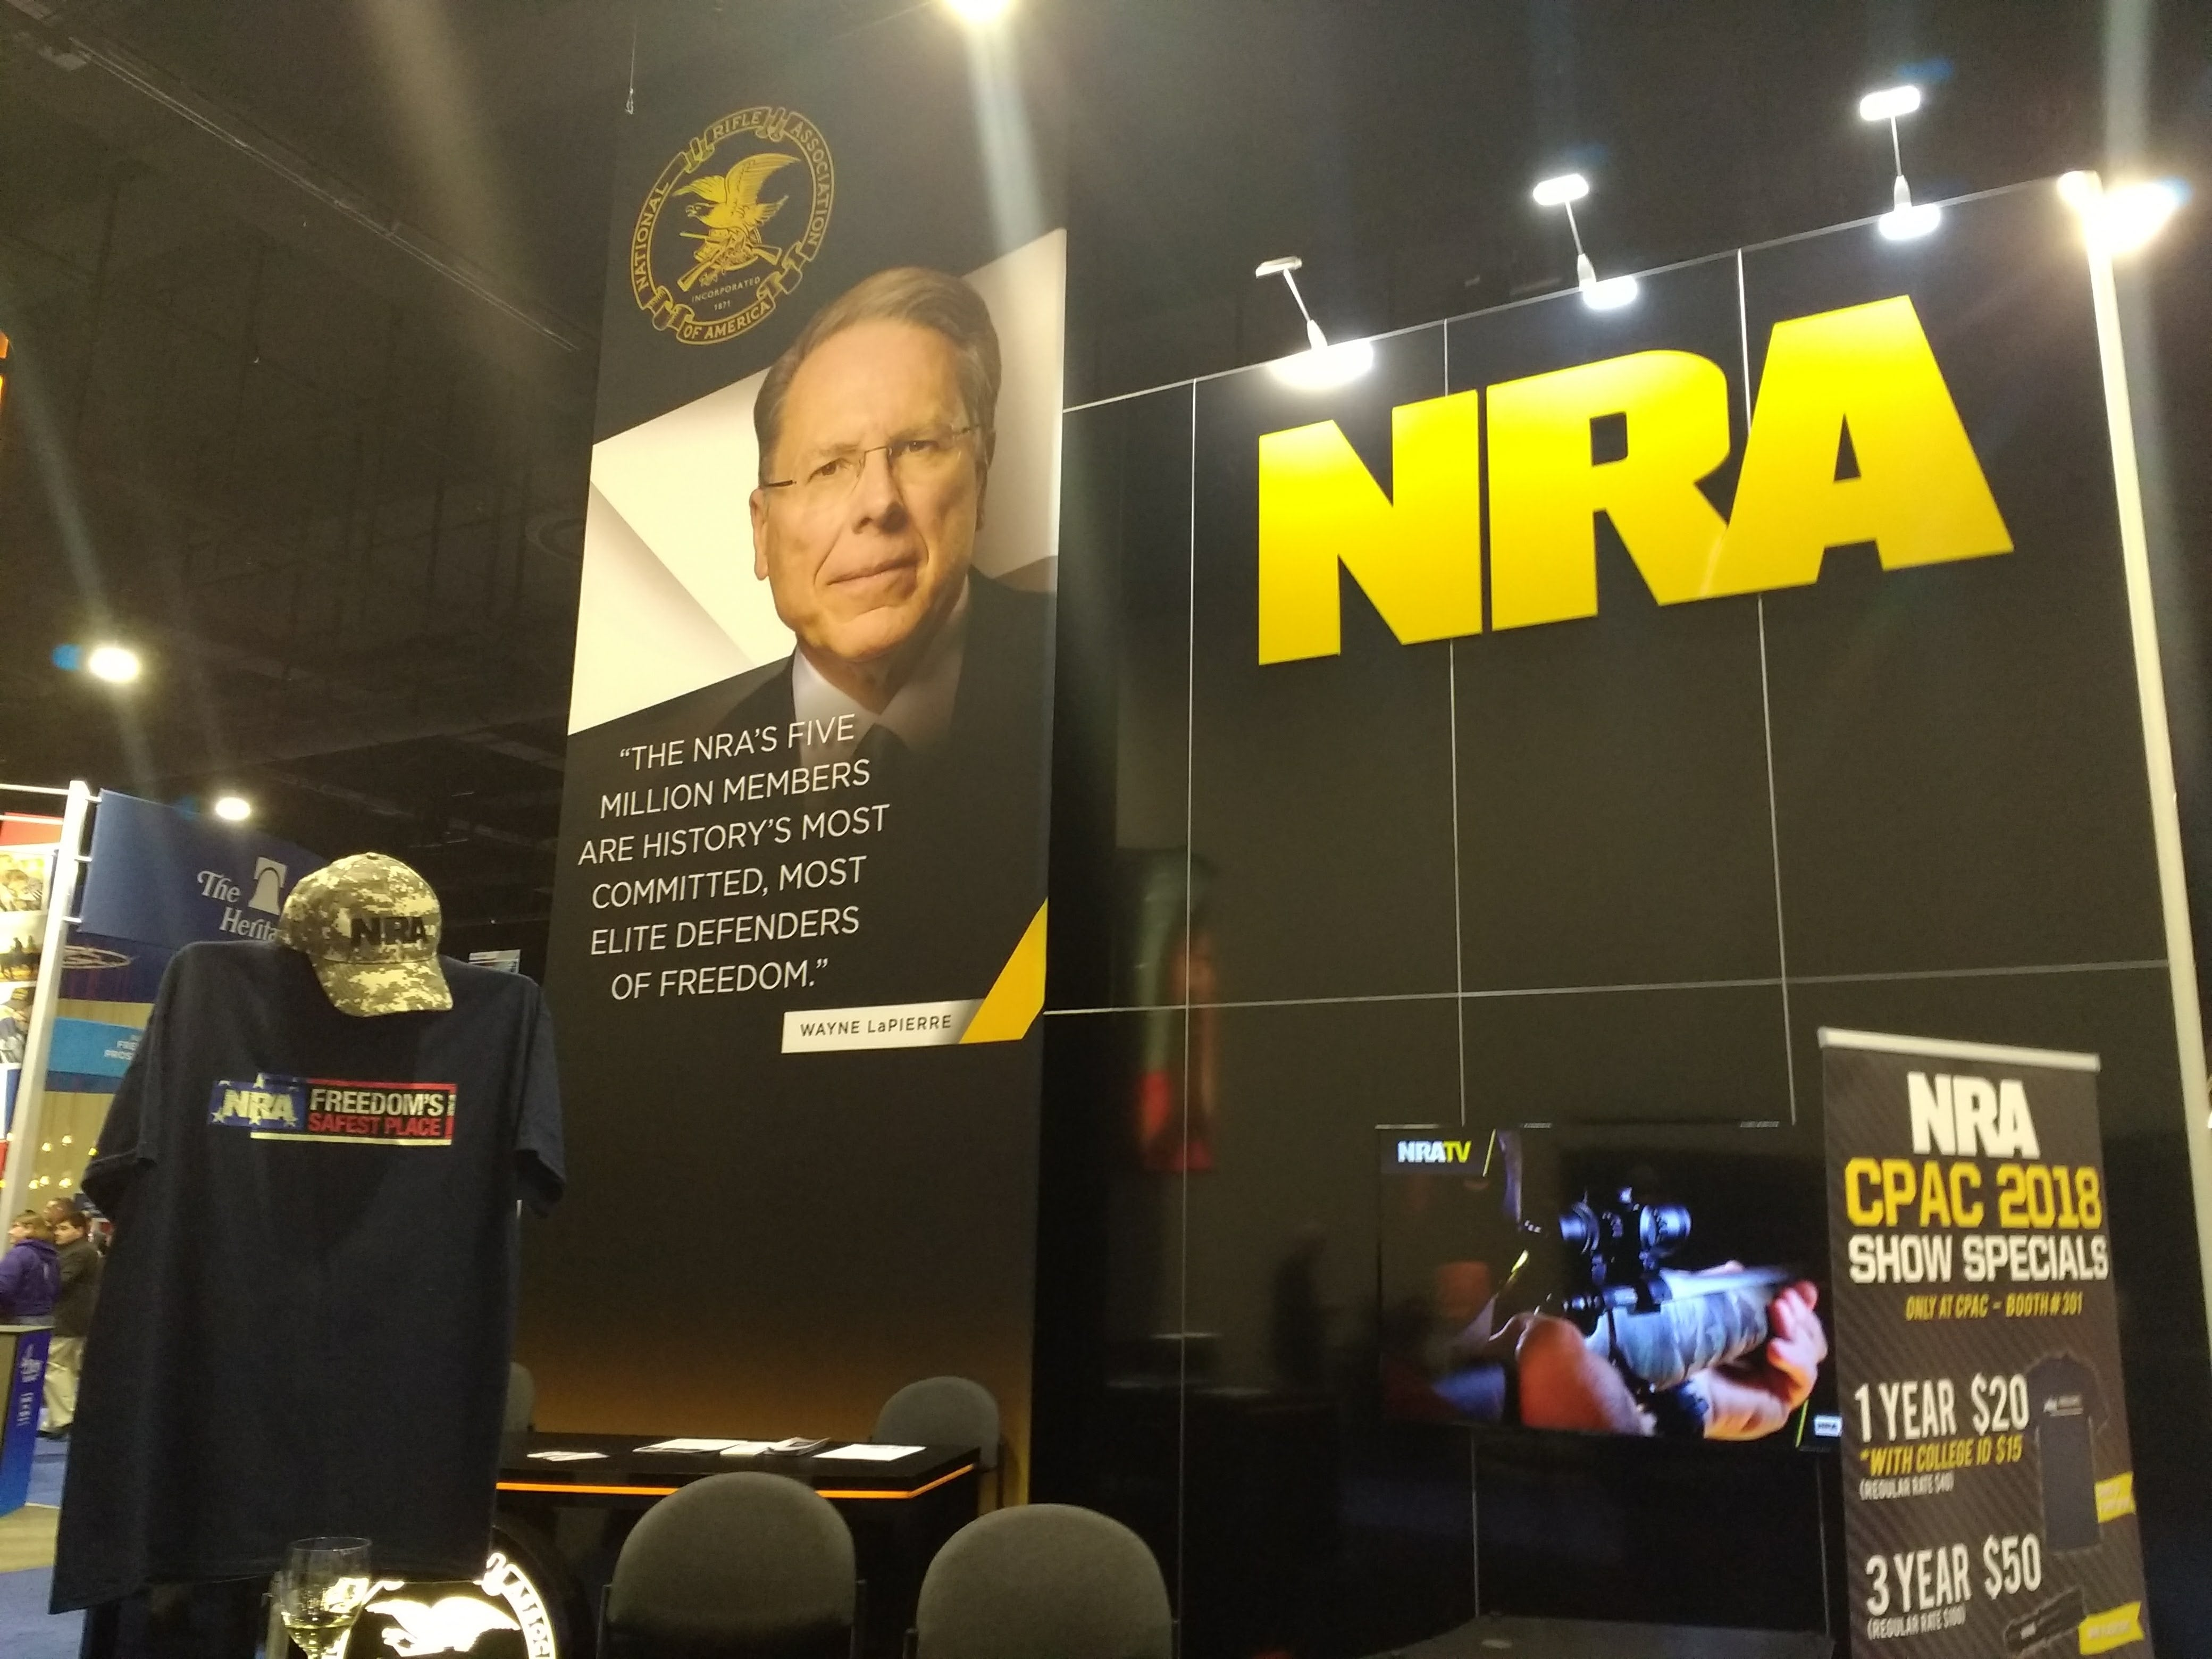 The NRA's massive and popular booth was back again this year.